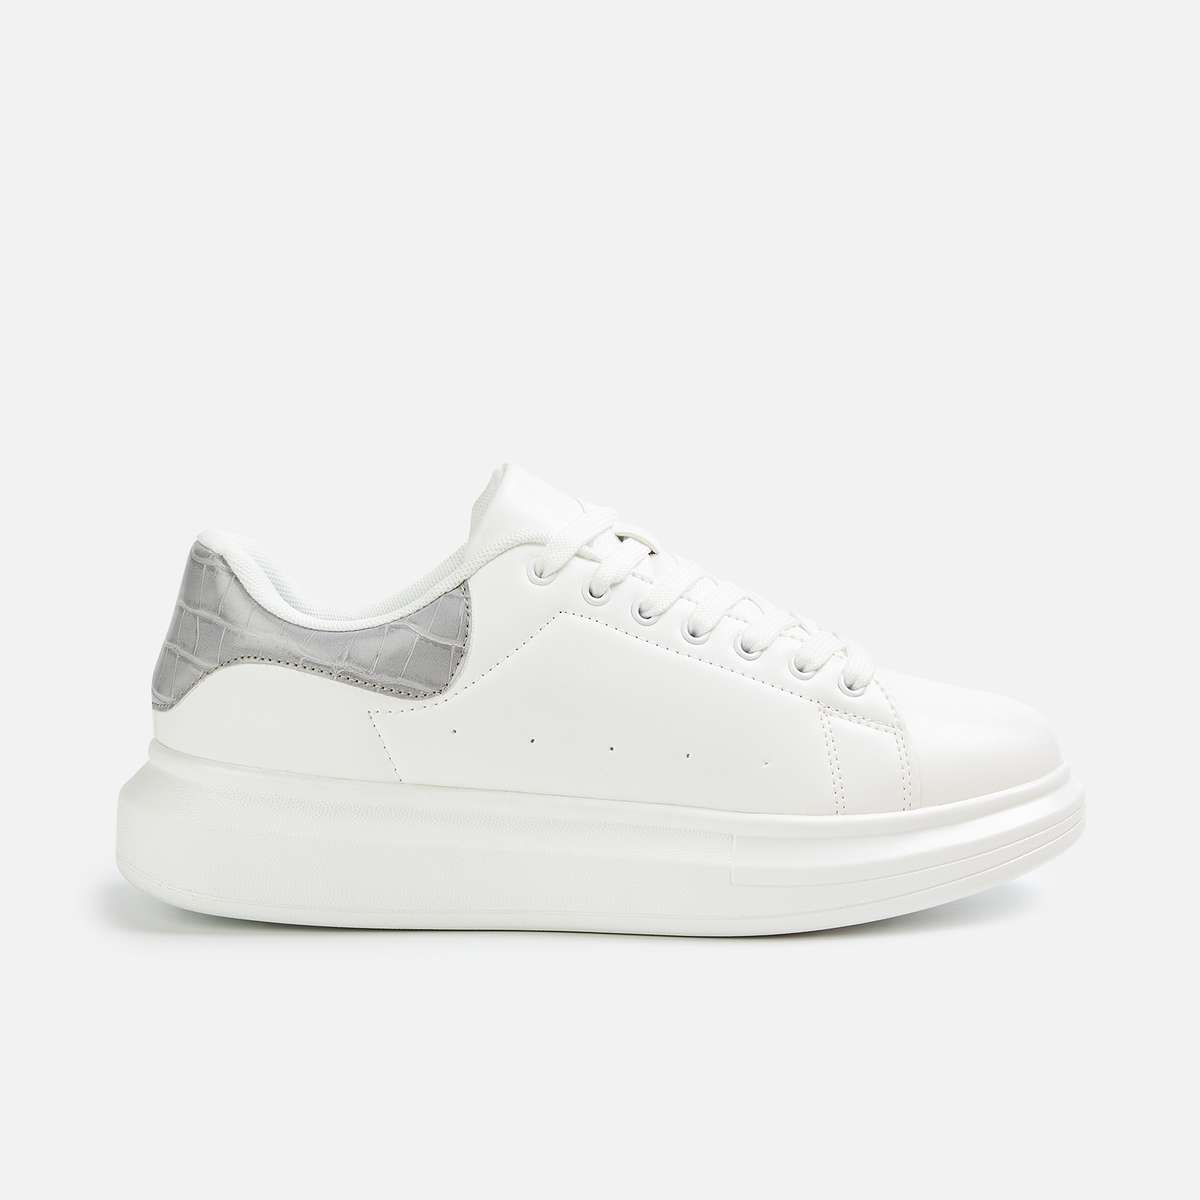 3.GINGER Women Panelled Lace-Up Casual Sneakers